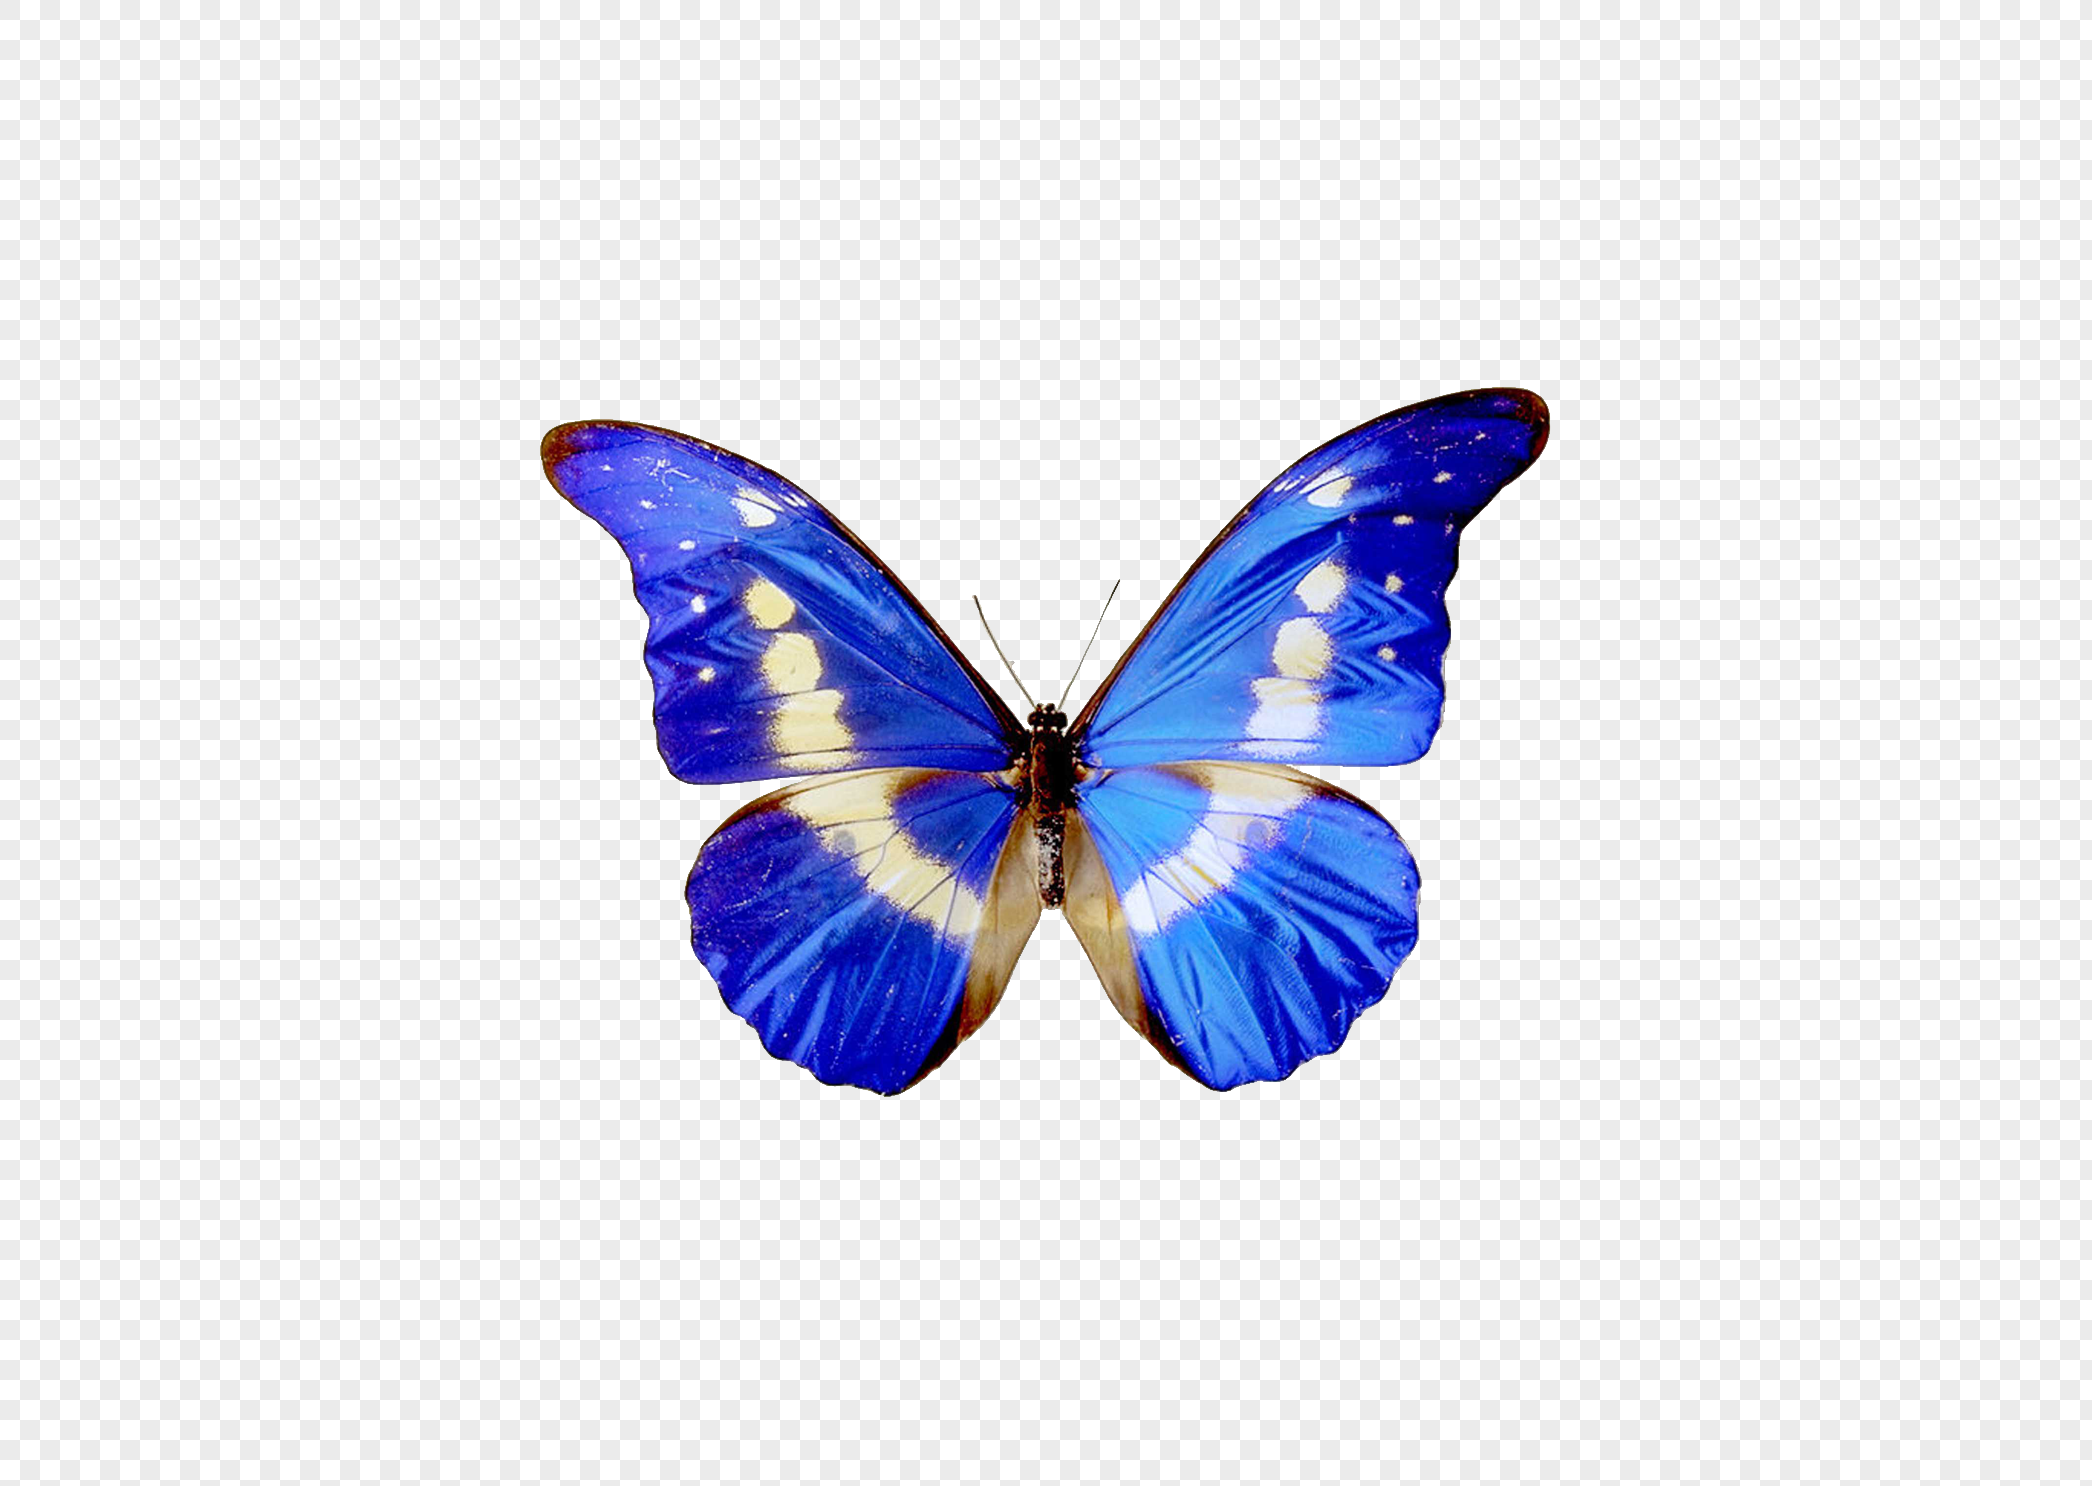 Blue Butterfly Specimens Png Image Picture Free Download